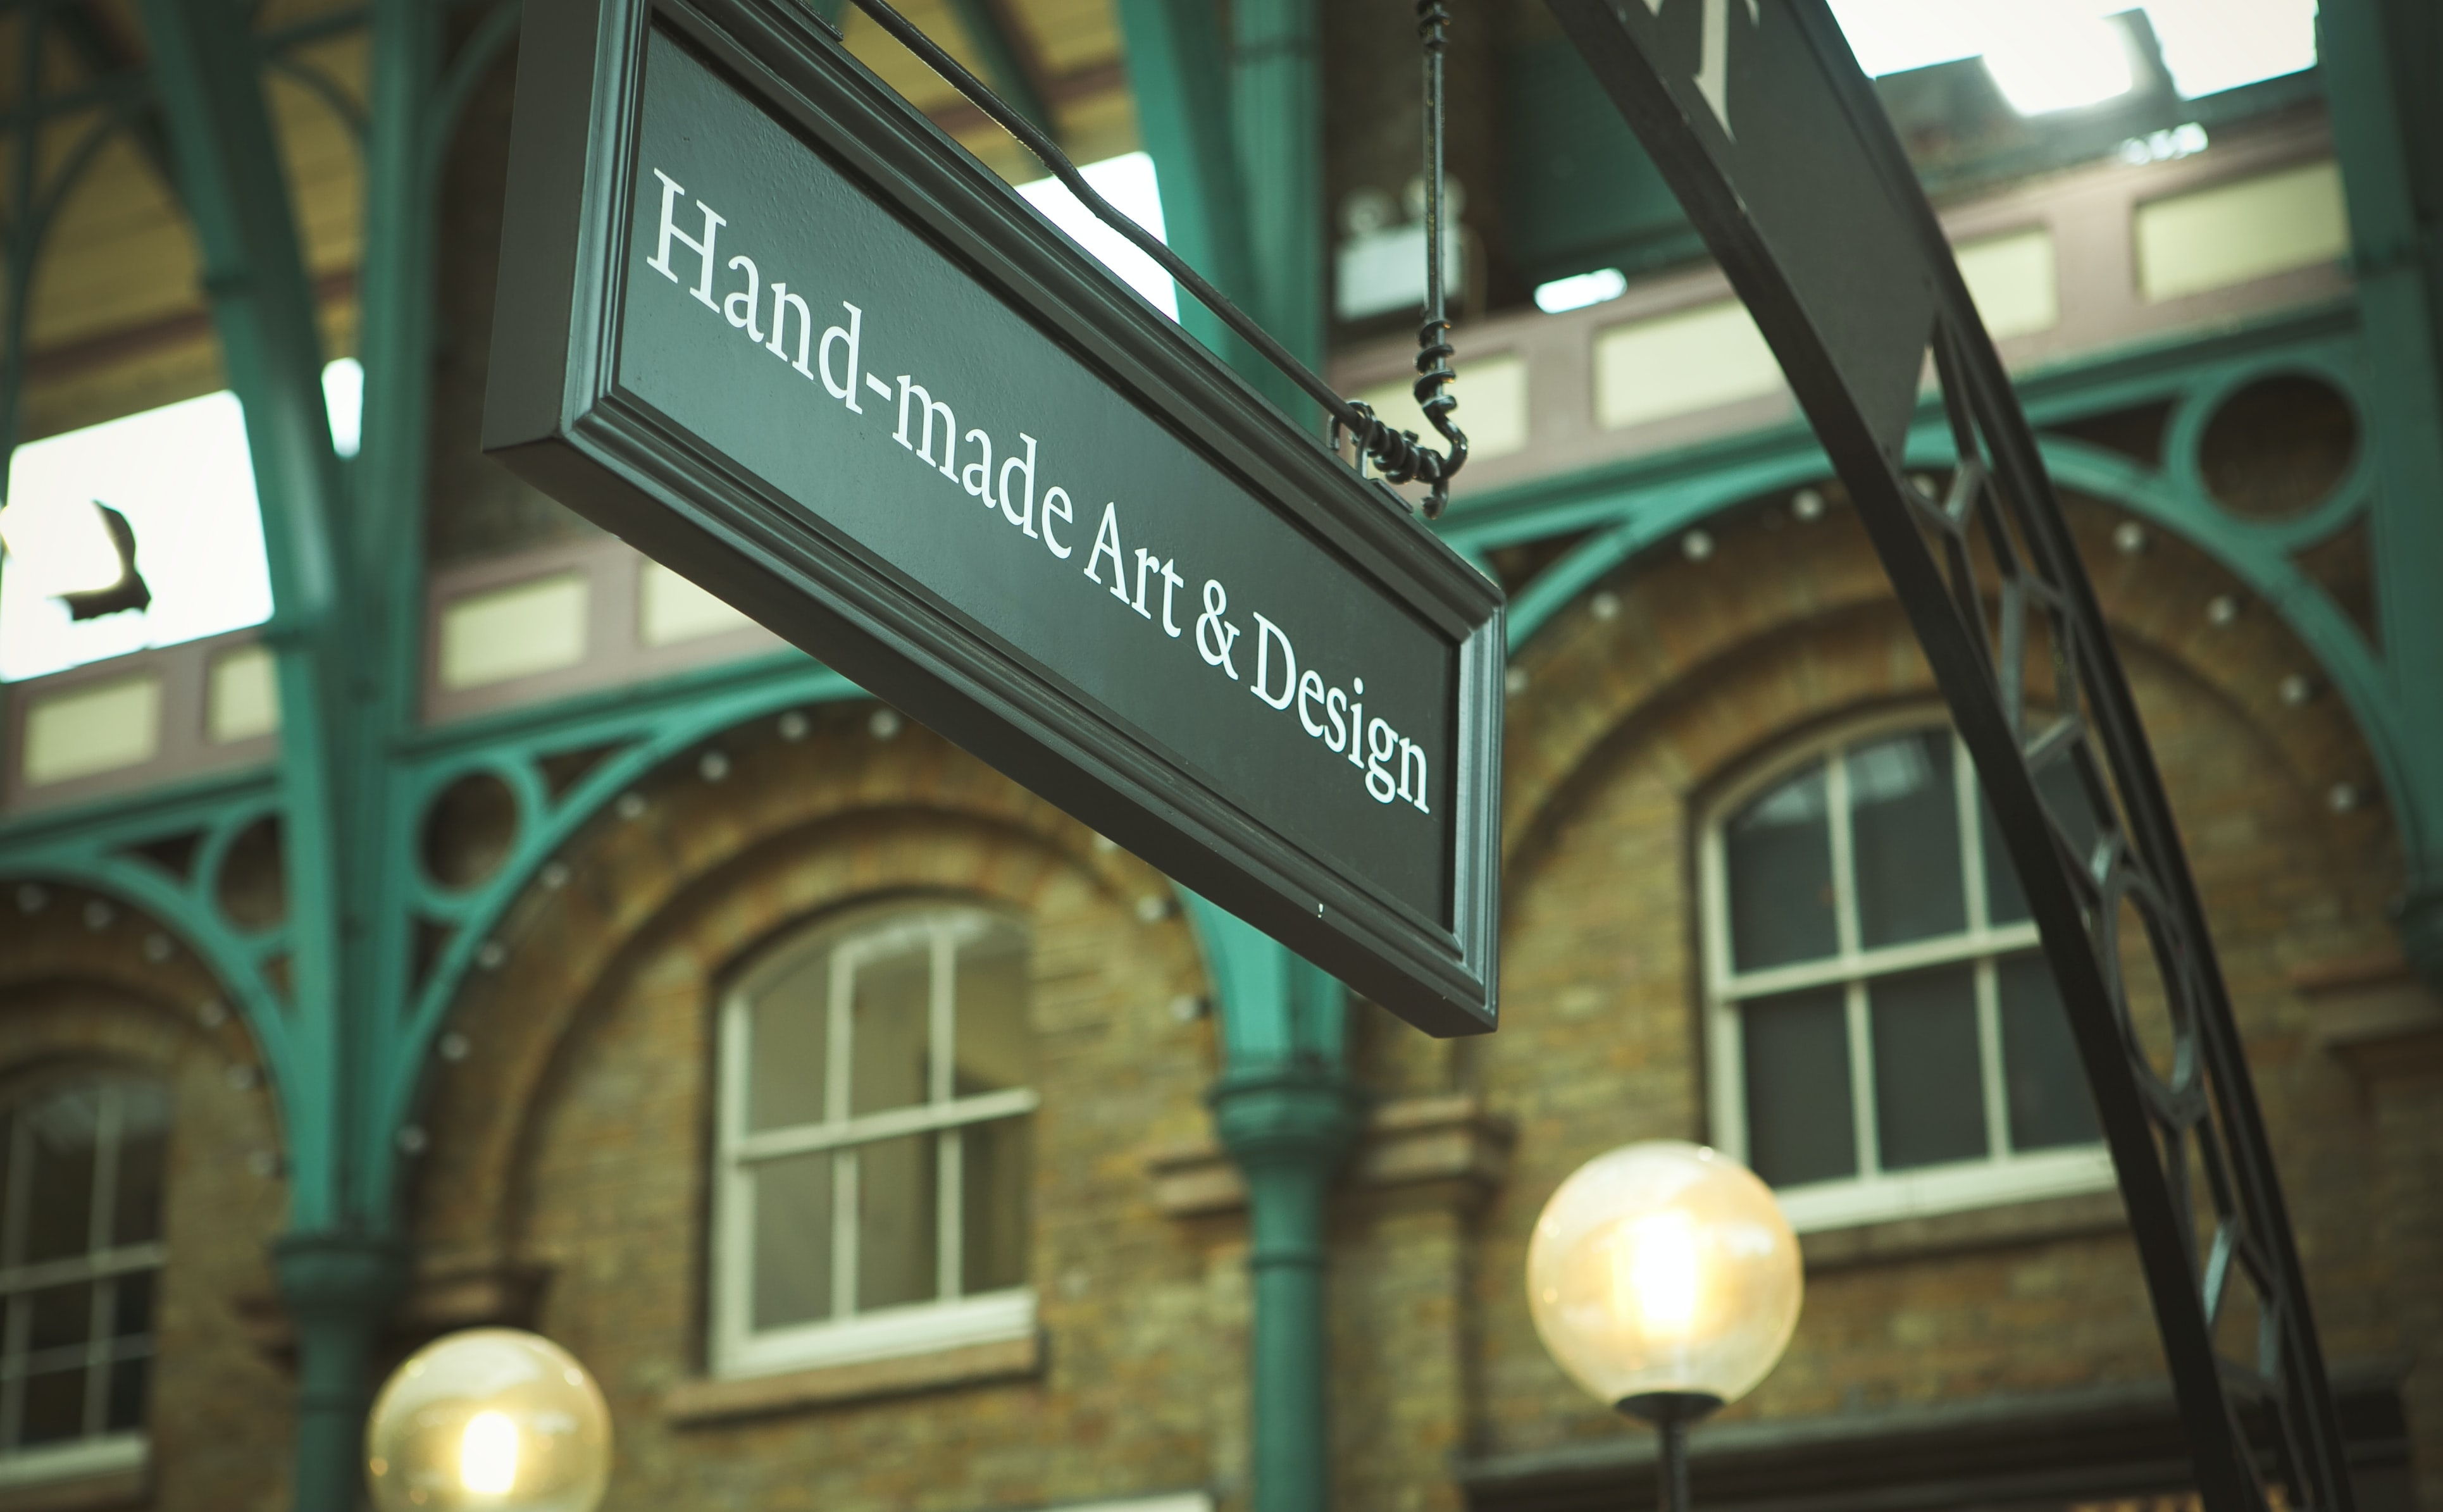 selective focus photo of Hand-made Art & Design signage